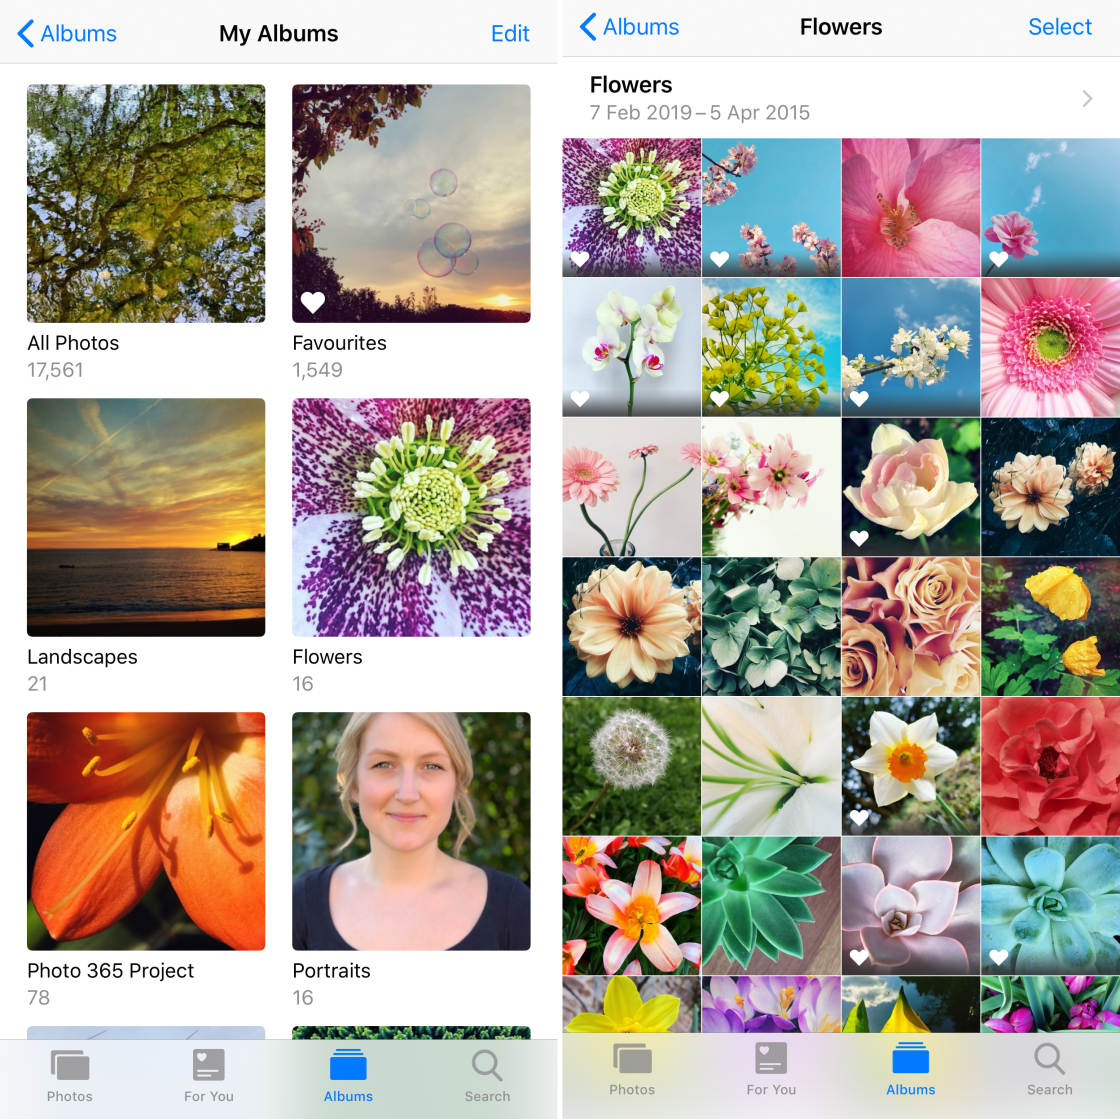 How To Use iPhone Photo Albums To Organize Photos